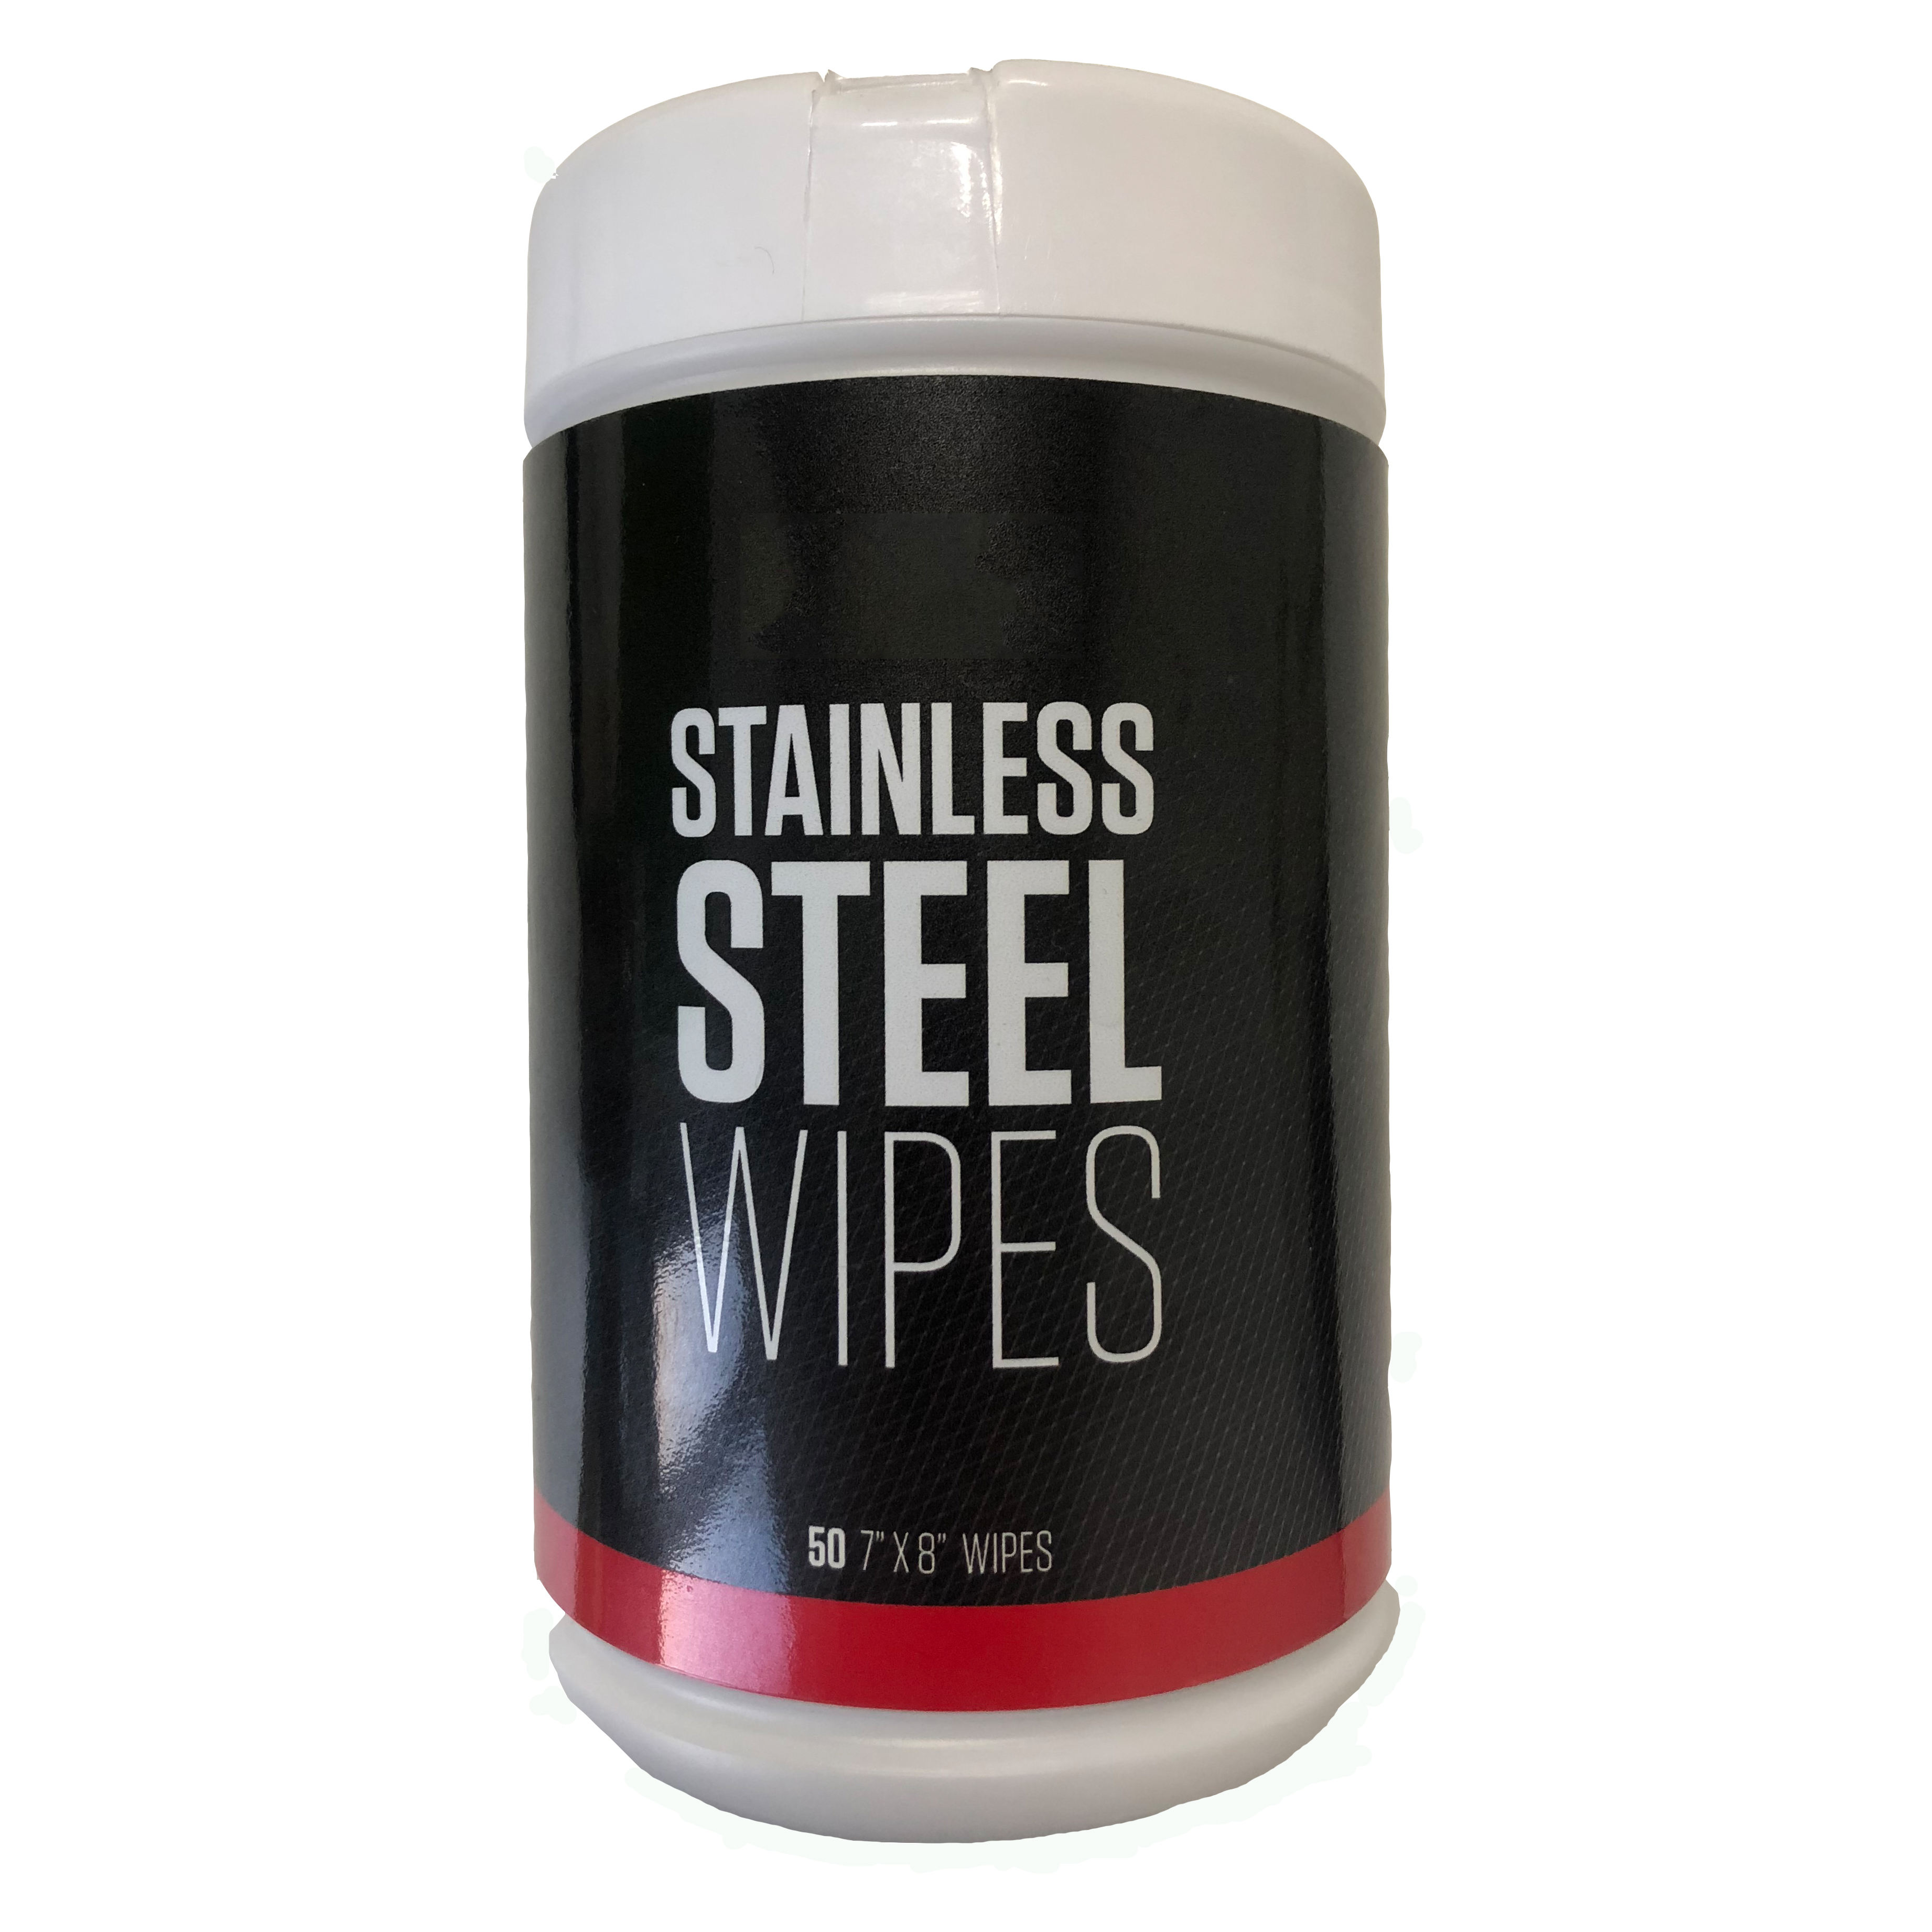 Factory OEM Oil based Household kitchen Cleaning Stainless Steel Wipes